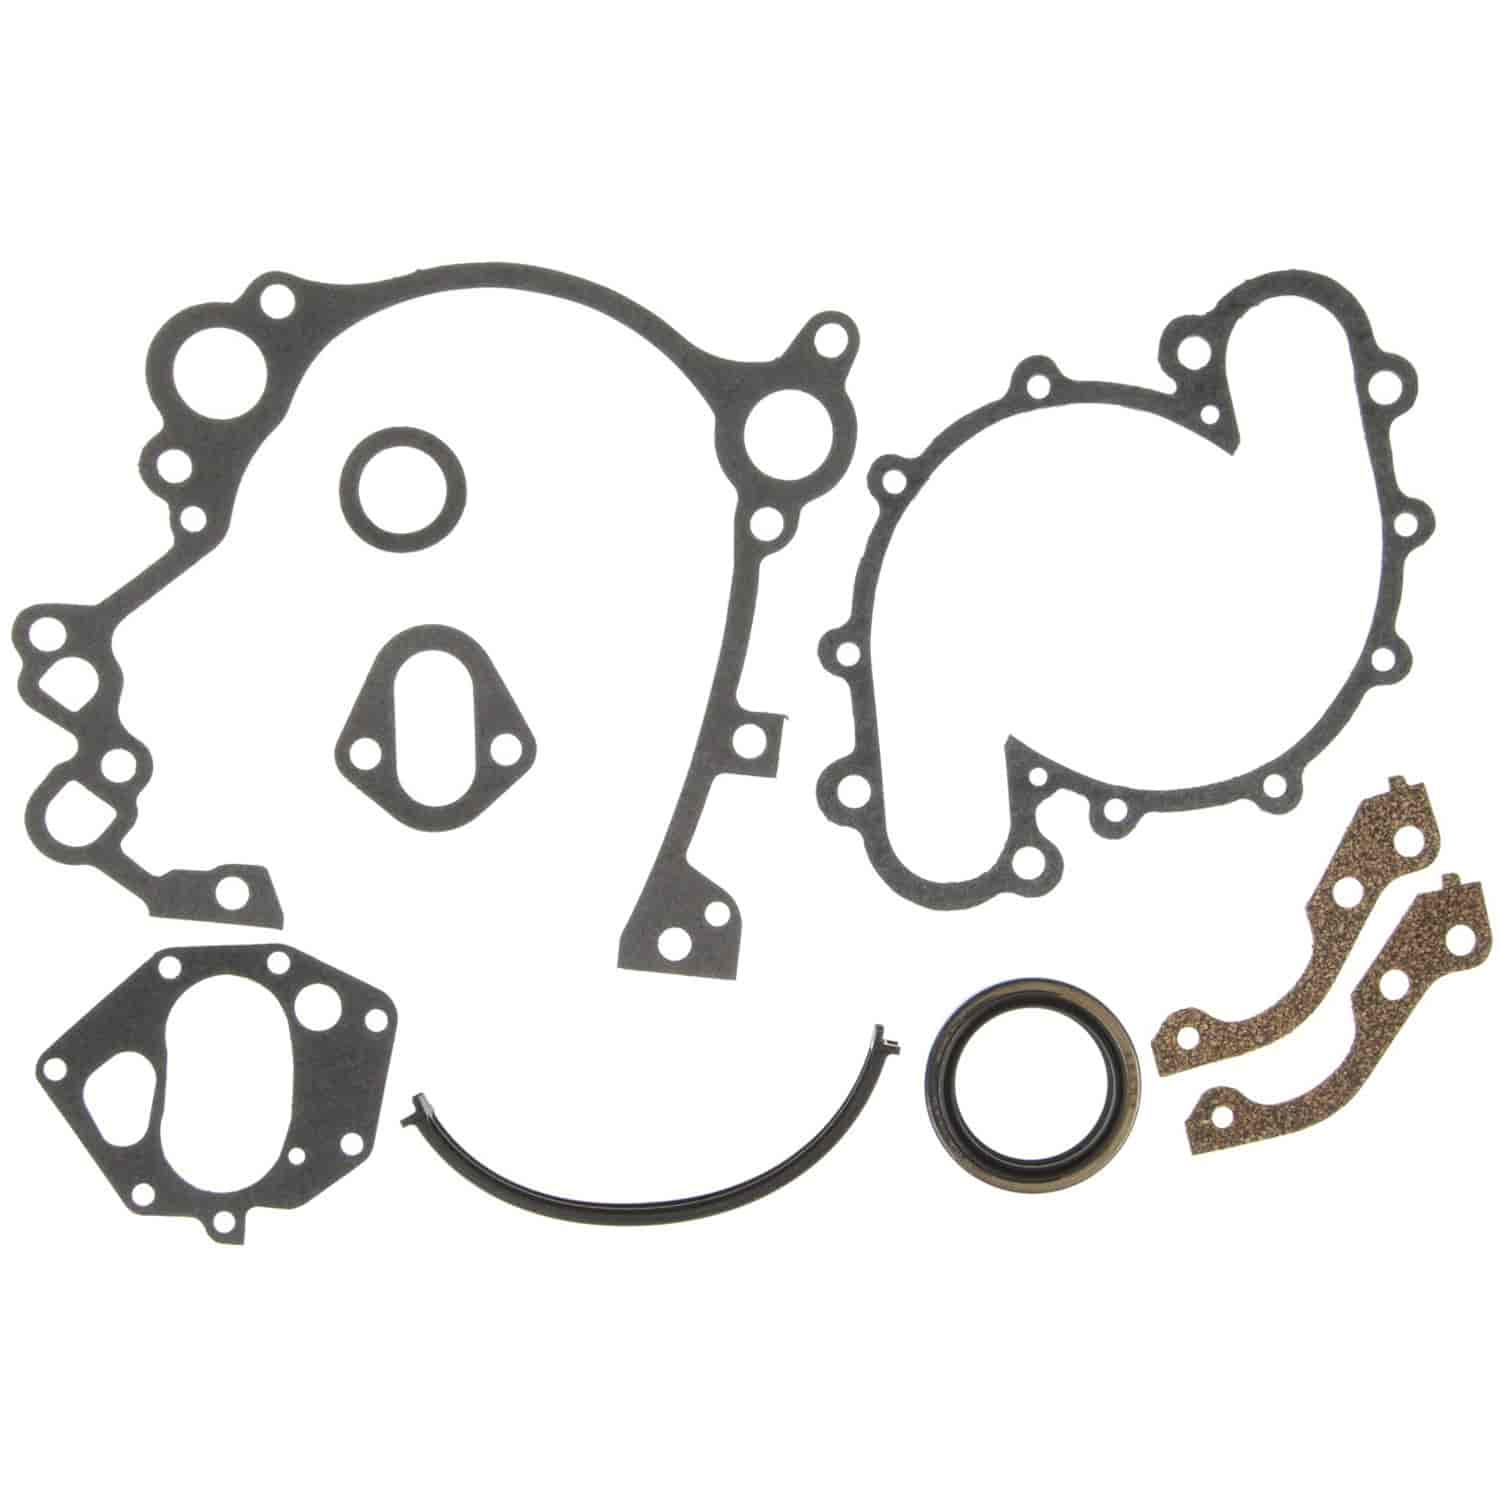 Clevite Mahle Jv870 Timing Cover Gasket Set Amc